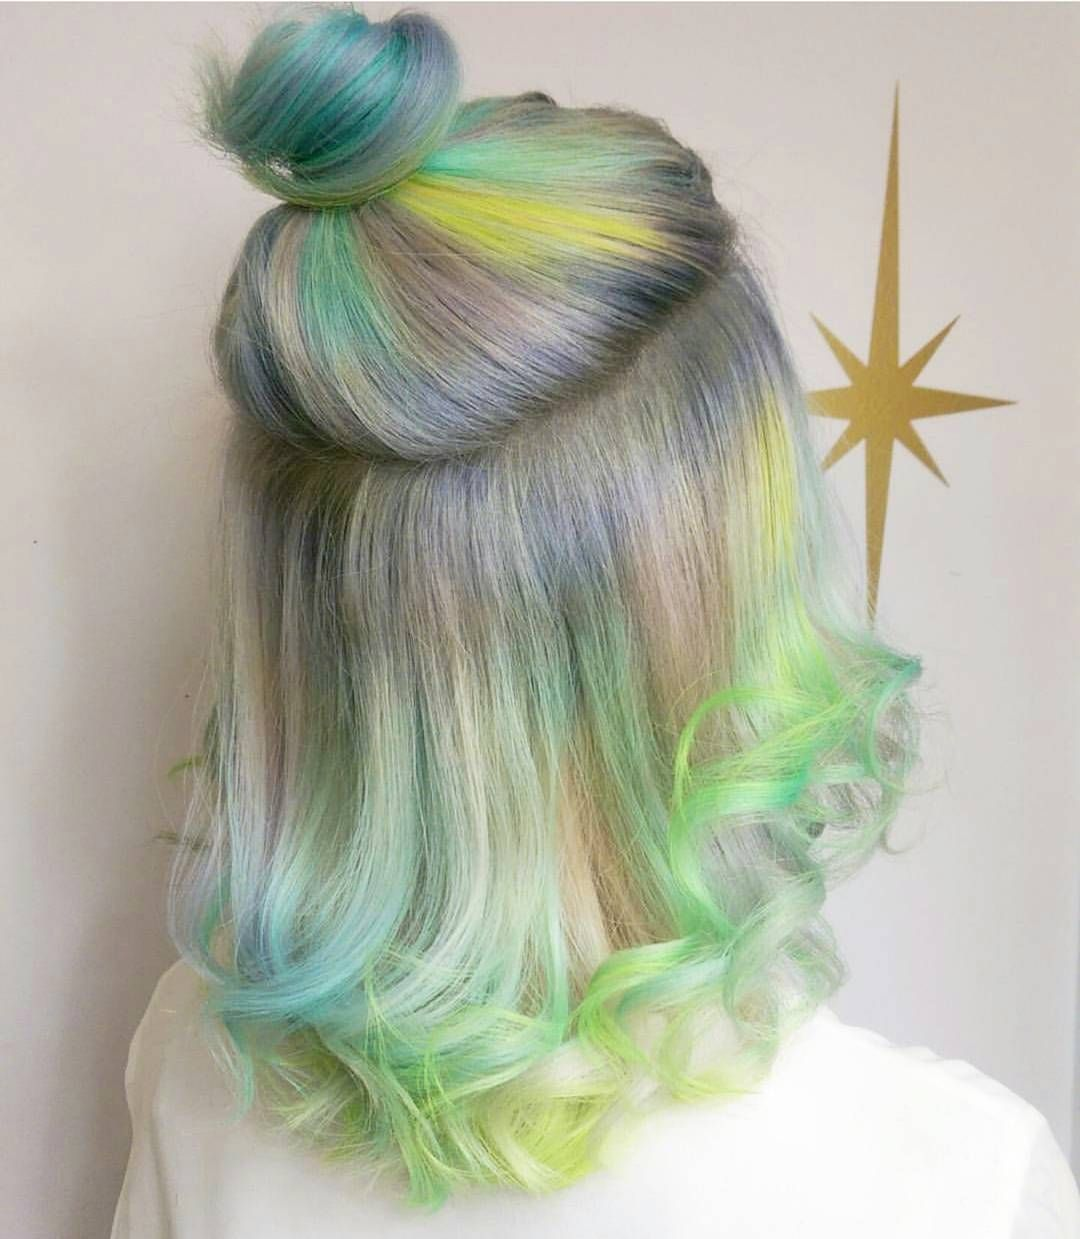 Pin by kayleena valdez on hair pinterest instagram hair